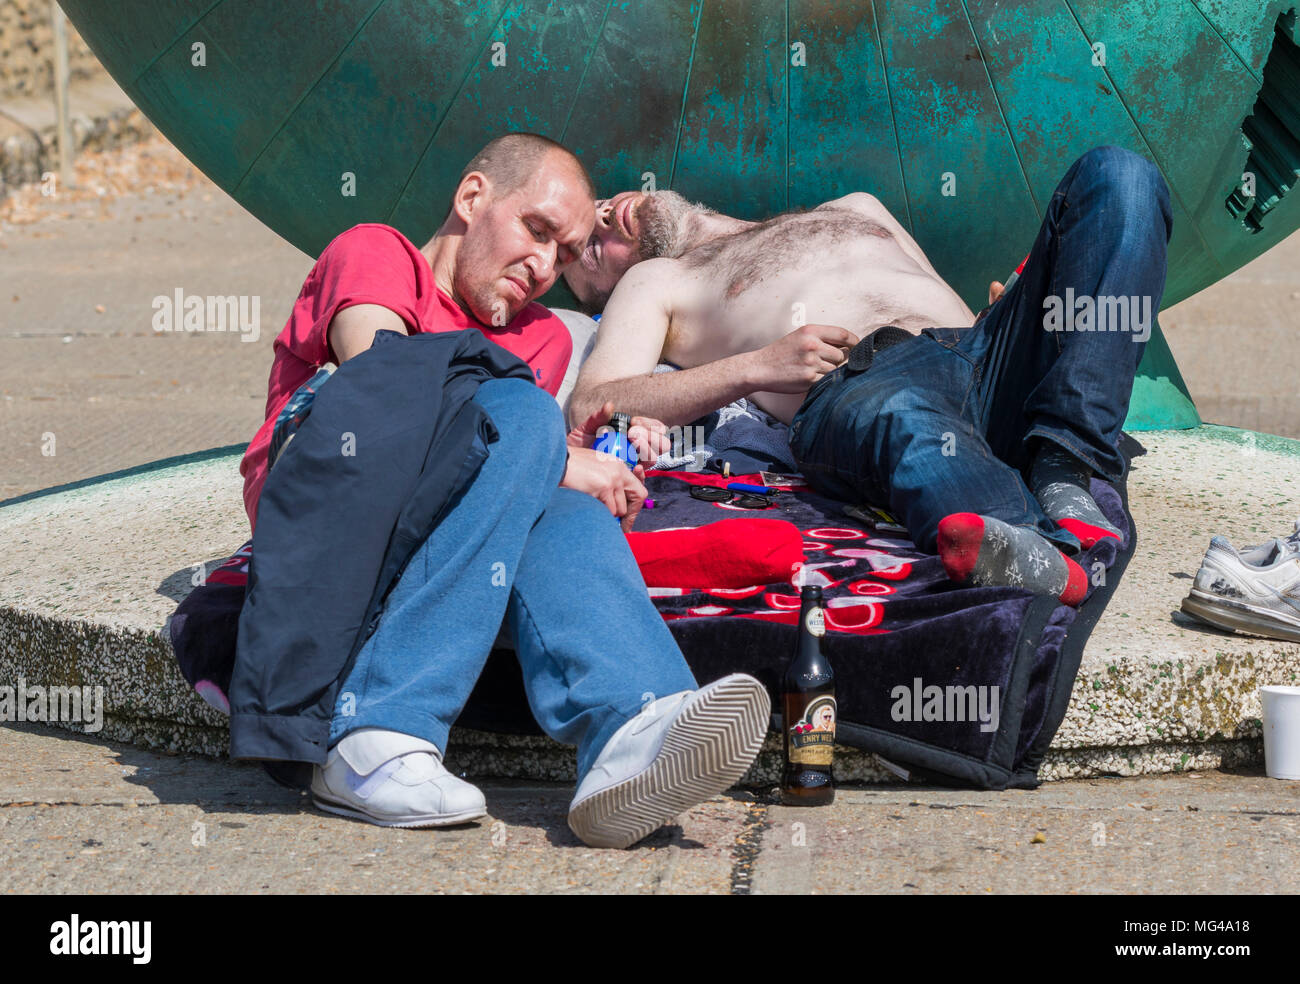 Men appearing to be homeless and sleeping rough in Brighton, East Sussex, England, UK. Homelessness UK. - Stock Image